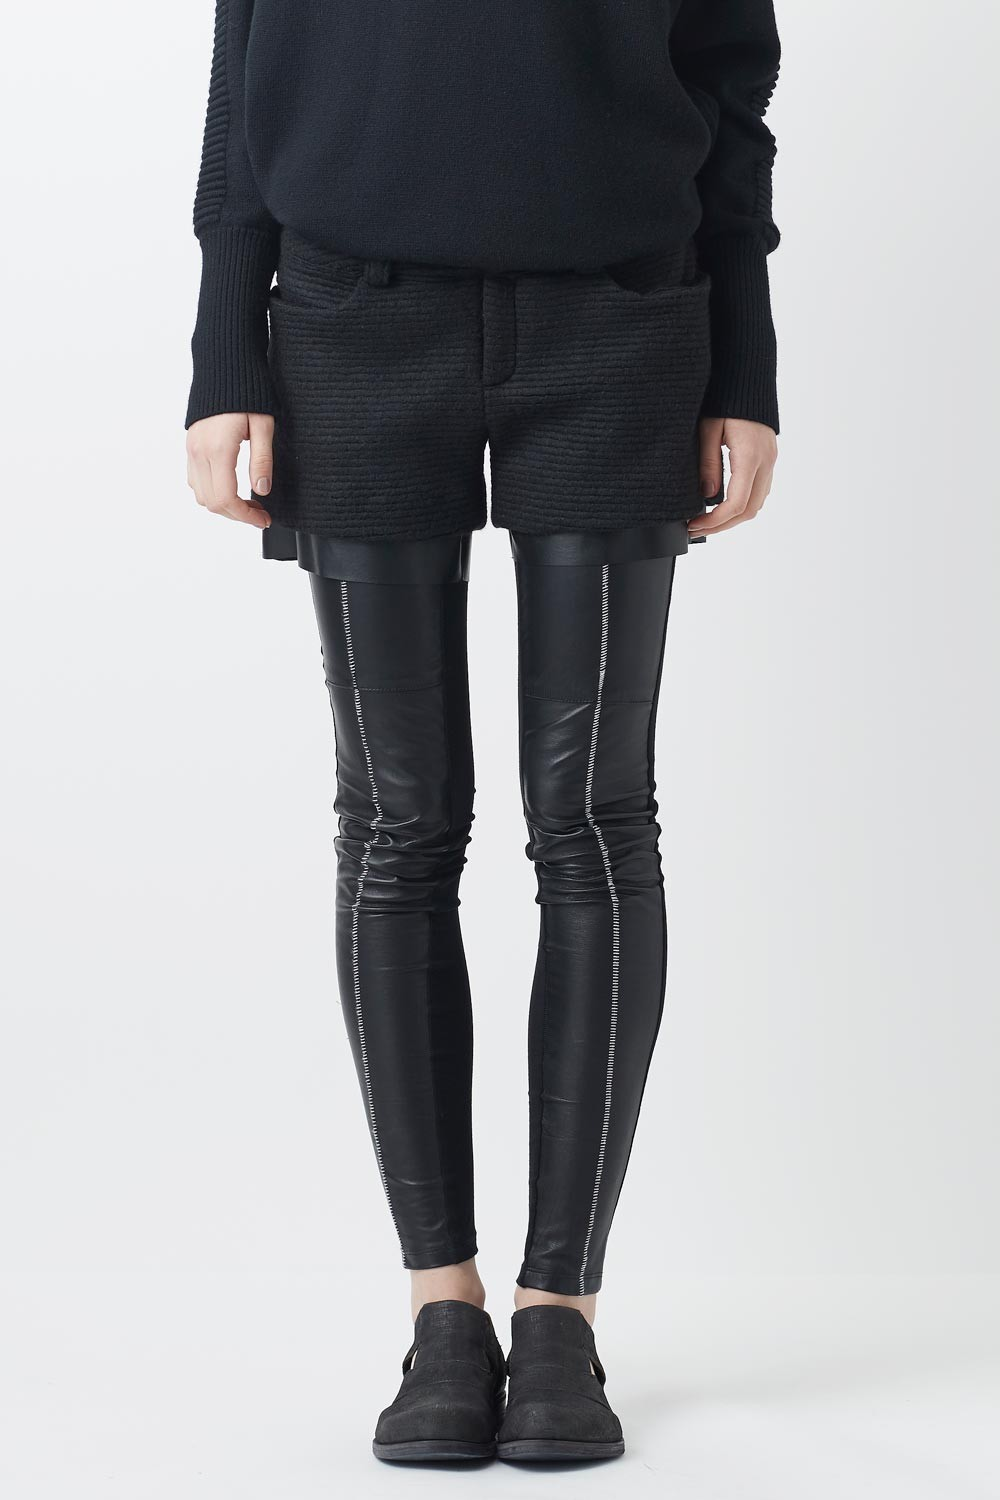 Leather Combi Over Lock Leggings - AL-1098